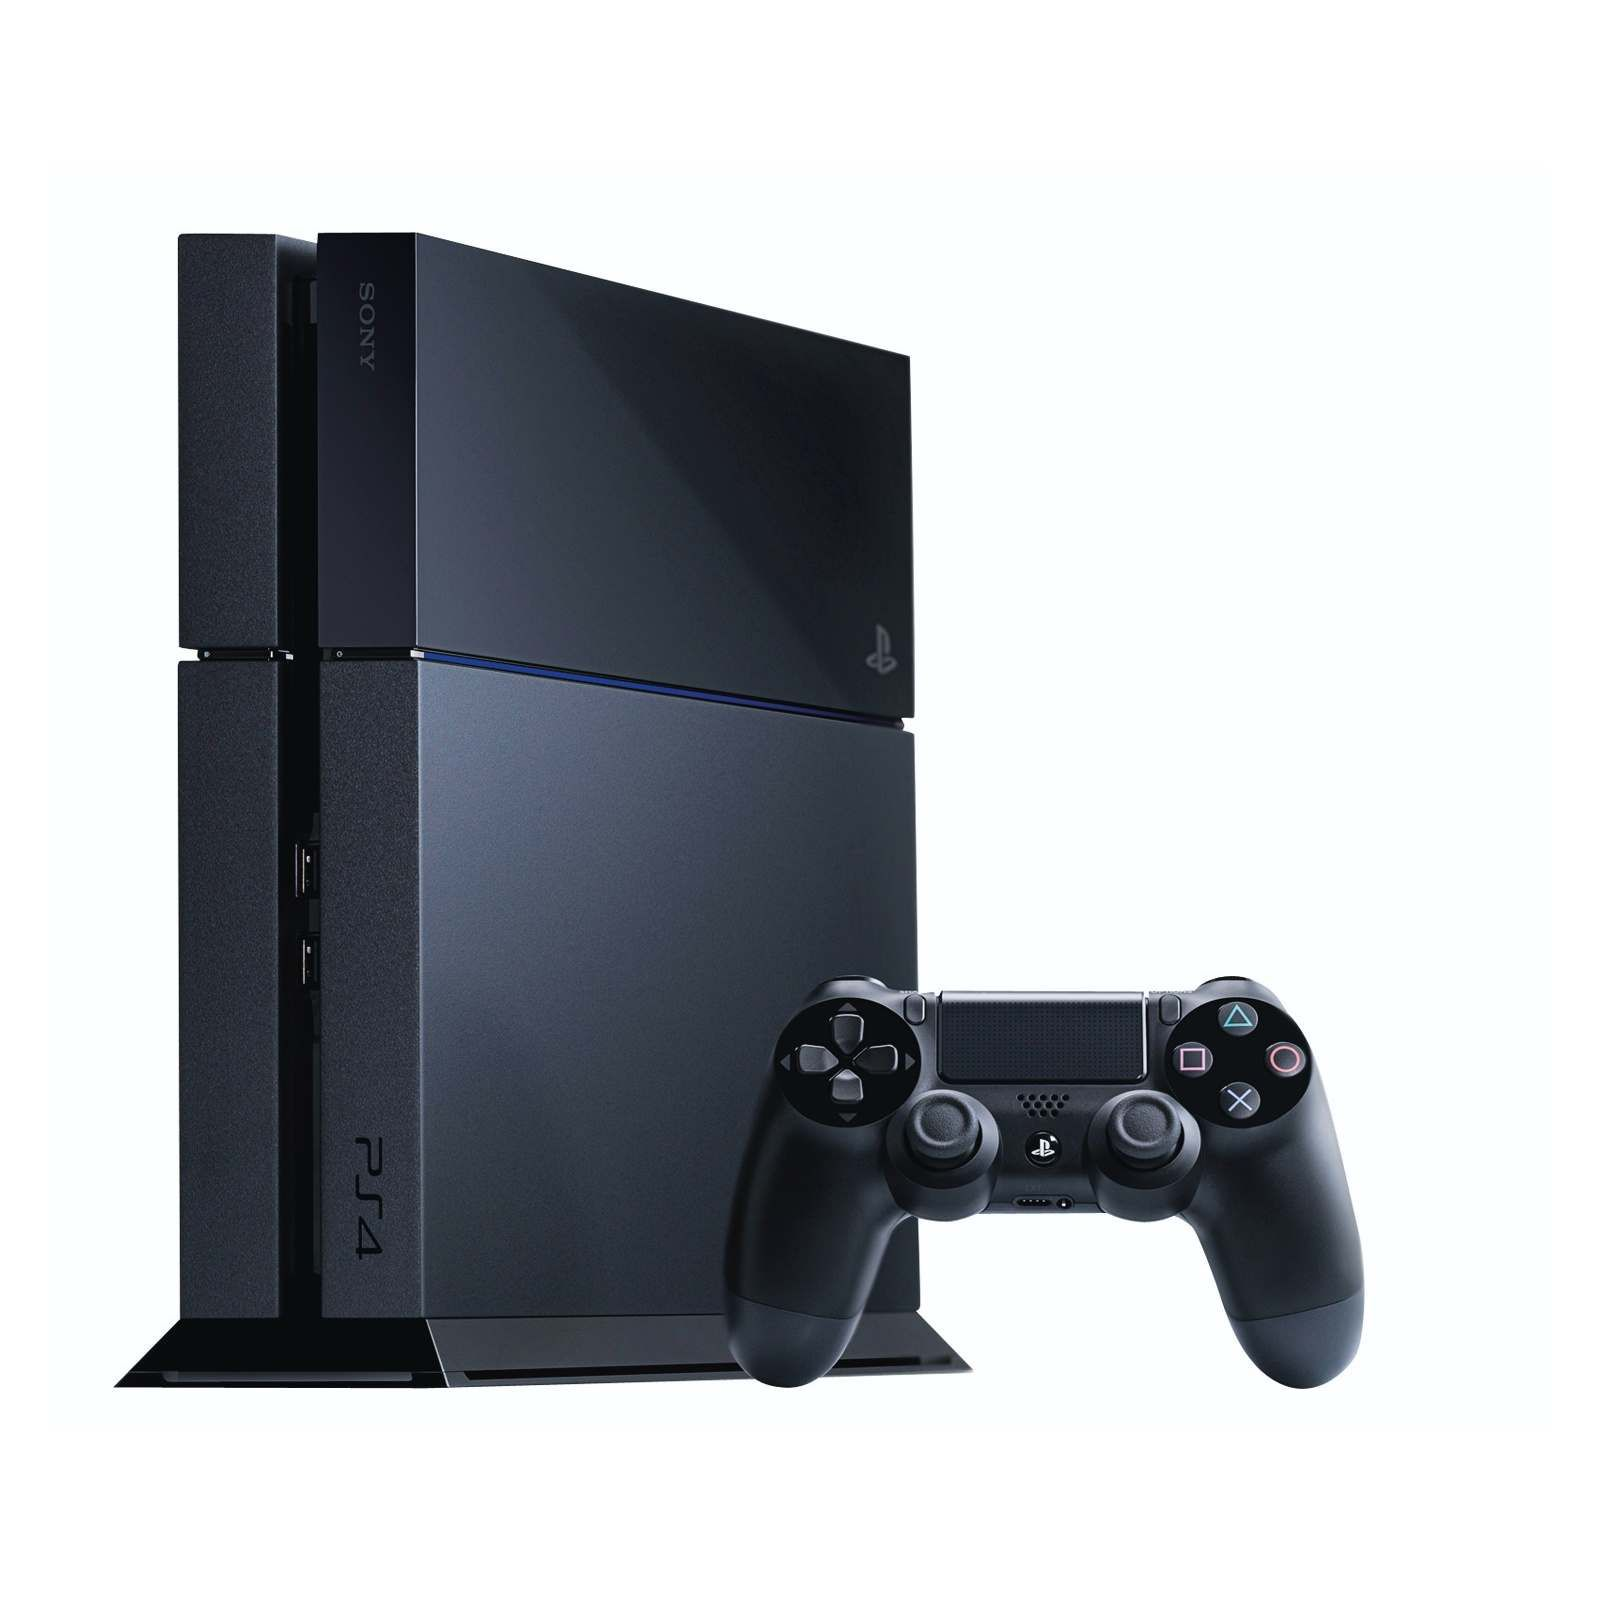 Ps4 500gb Console Black Playstation 4 Console Ps4 Console Sony Playstation How to read videos on ps4